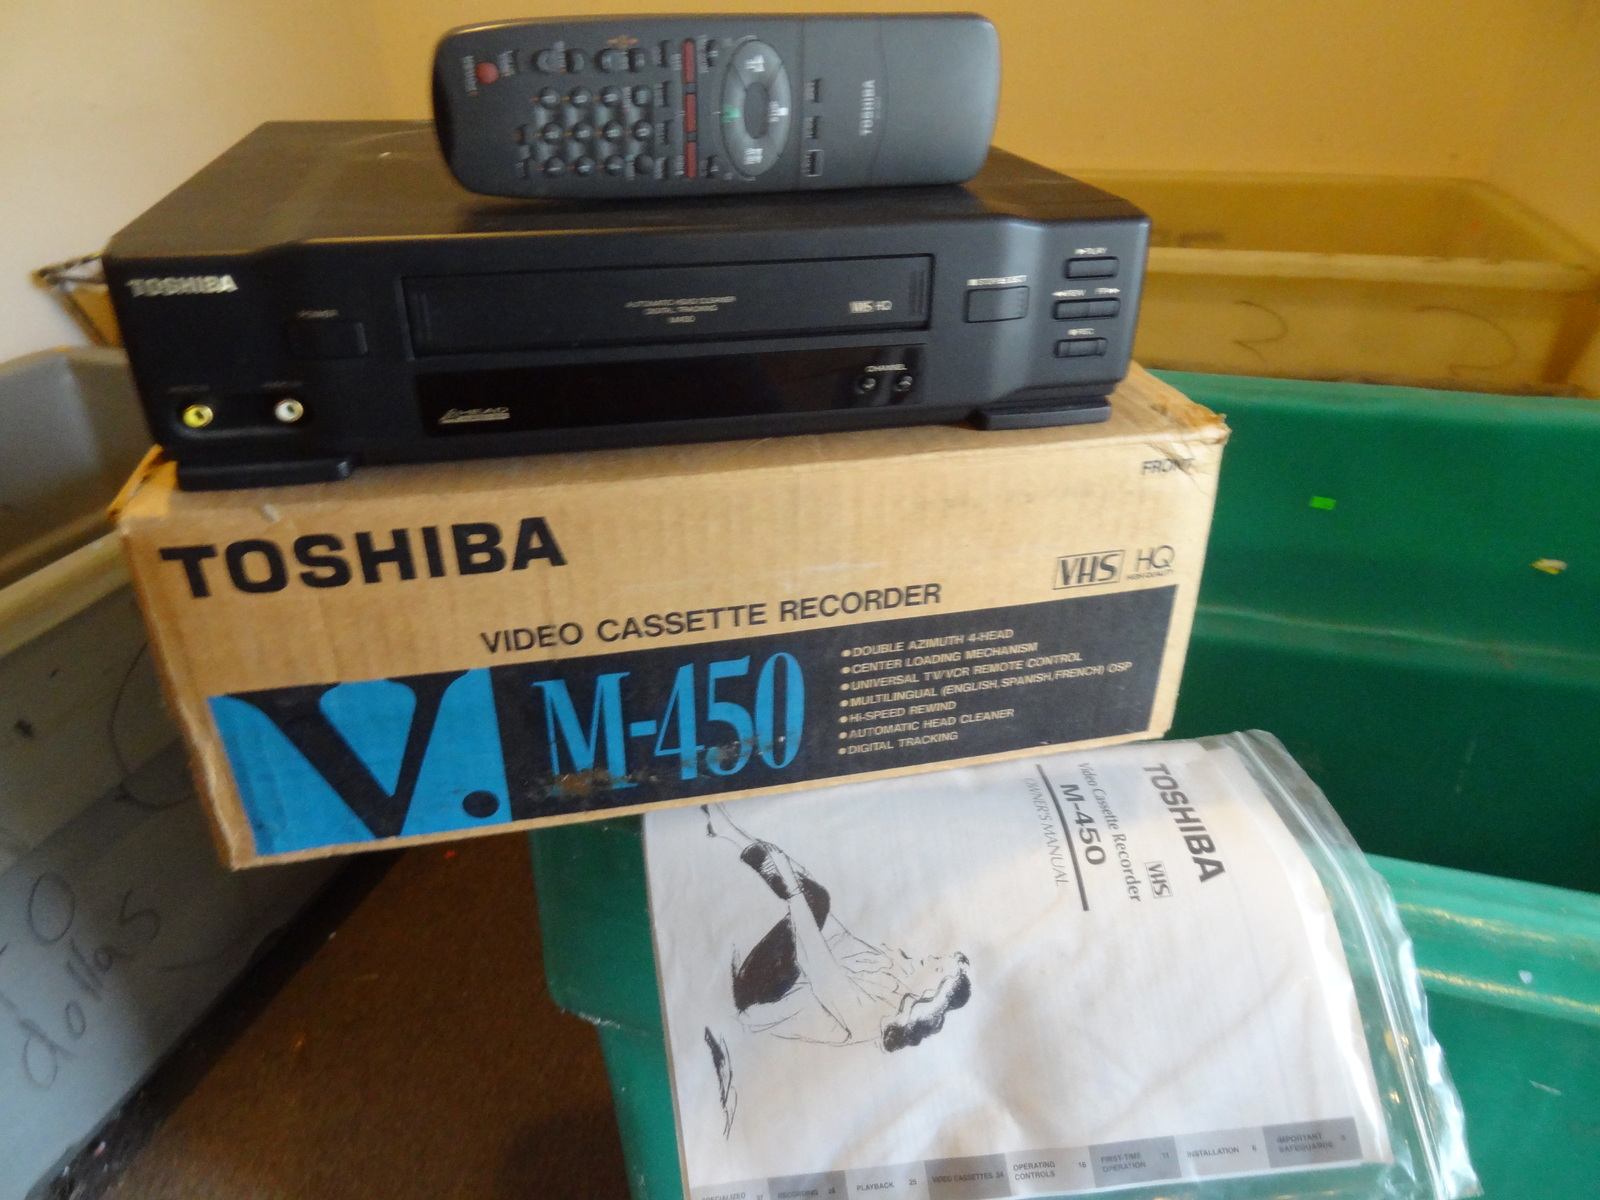 Toshiba M-450 Vhs Vcr Player W/ Remote Video and 50 similar items